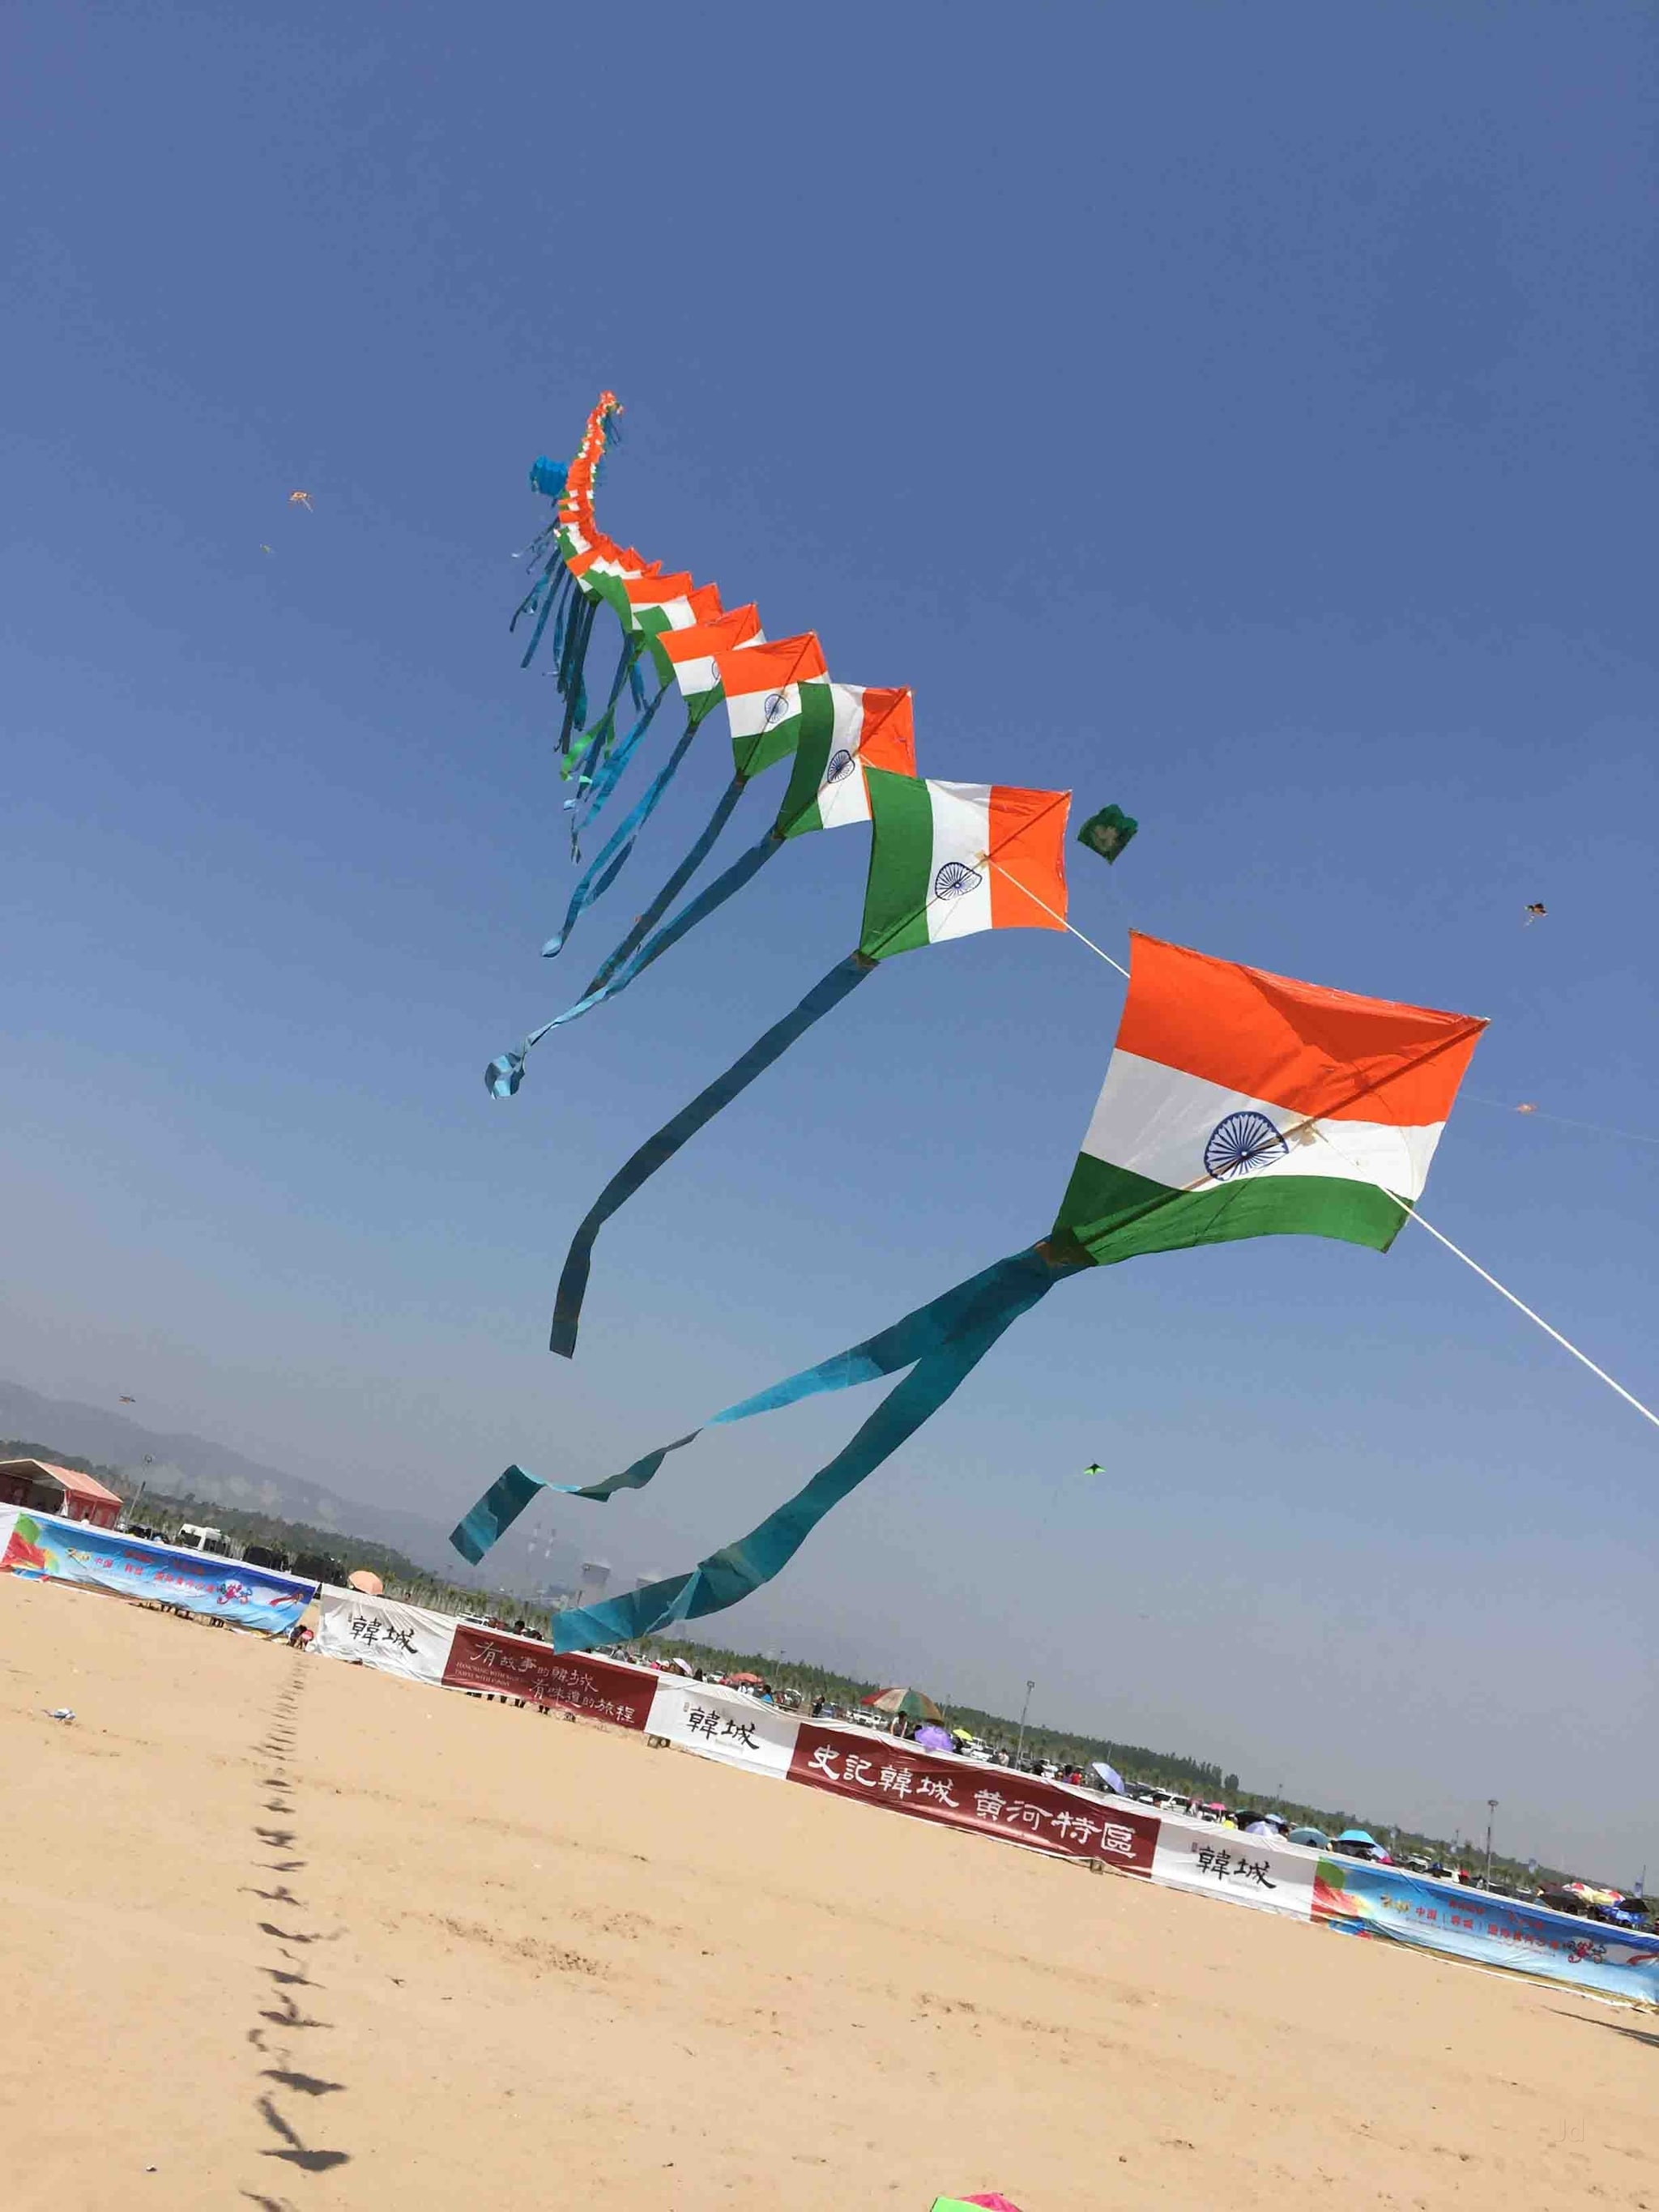 Top 10 Kite Dealers in Bangalore - Justdial Map Of Global Makites Cocoa on